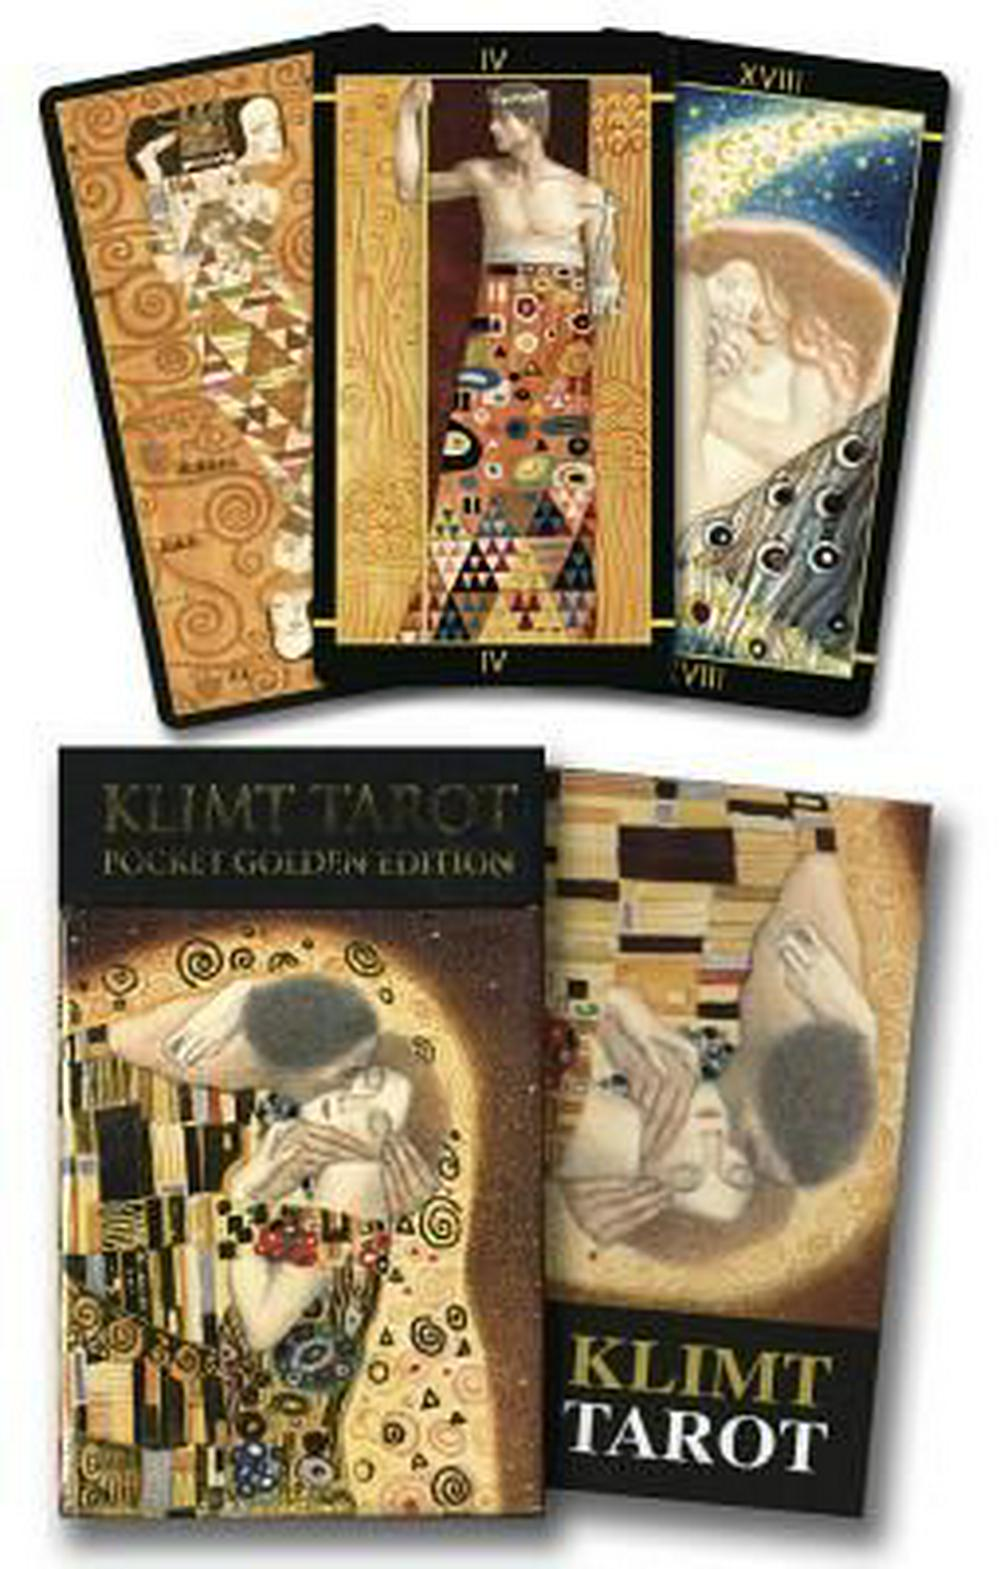 Golden Tarot of Klimt Mini Deck by Atanas A. Atanassov, ISBN: 9780738745343